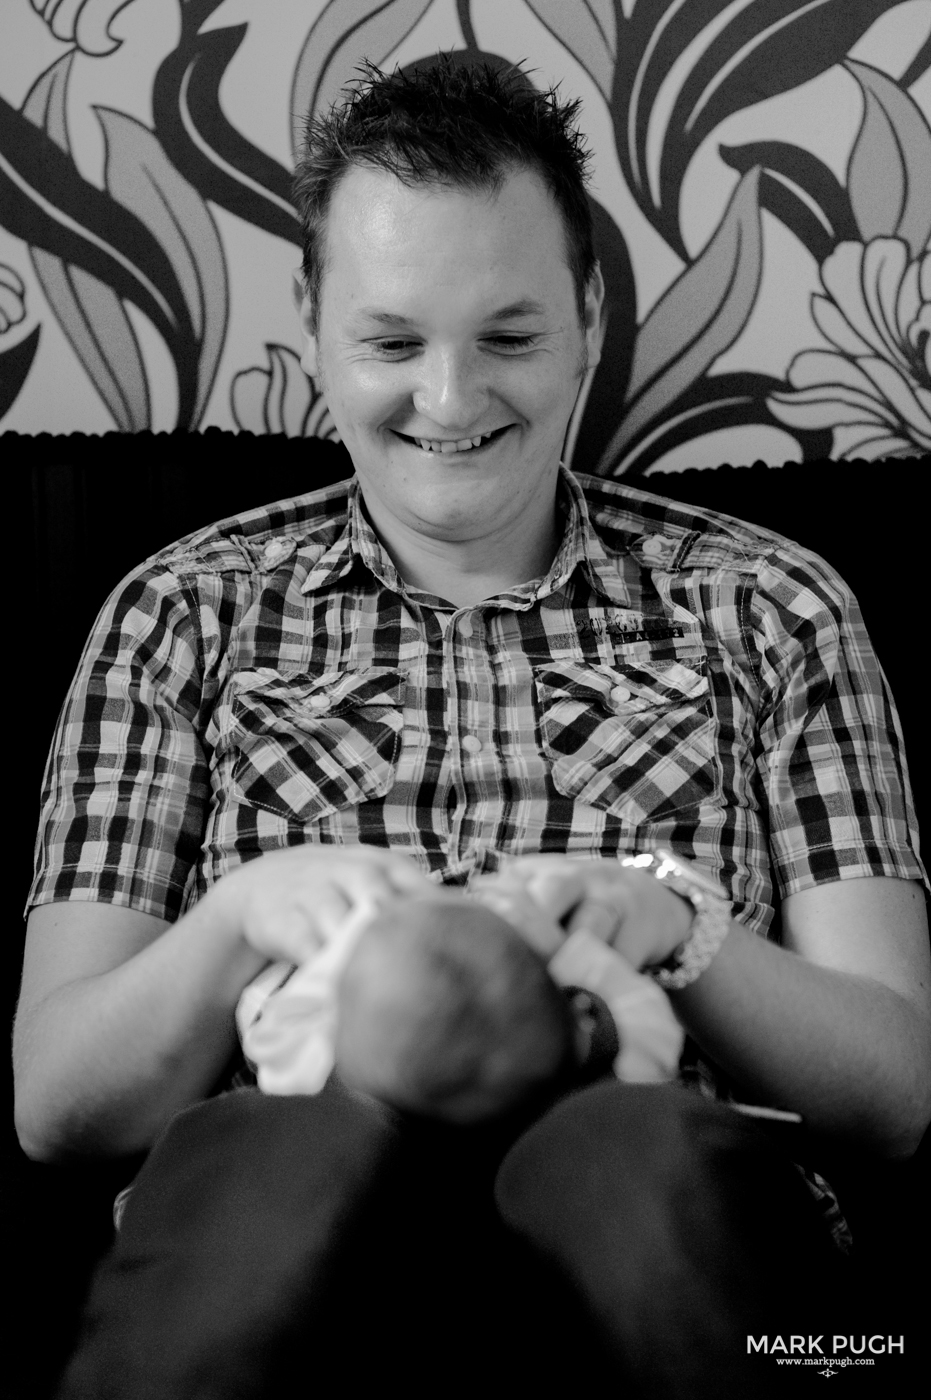 031 Sarah Martyn and Elijah family and newborn photography session by Mark Pugh www.markpugh.com.jpg